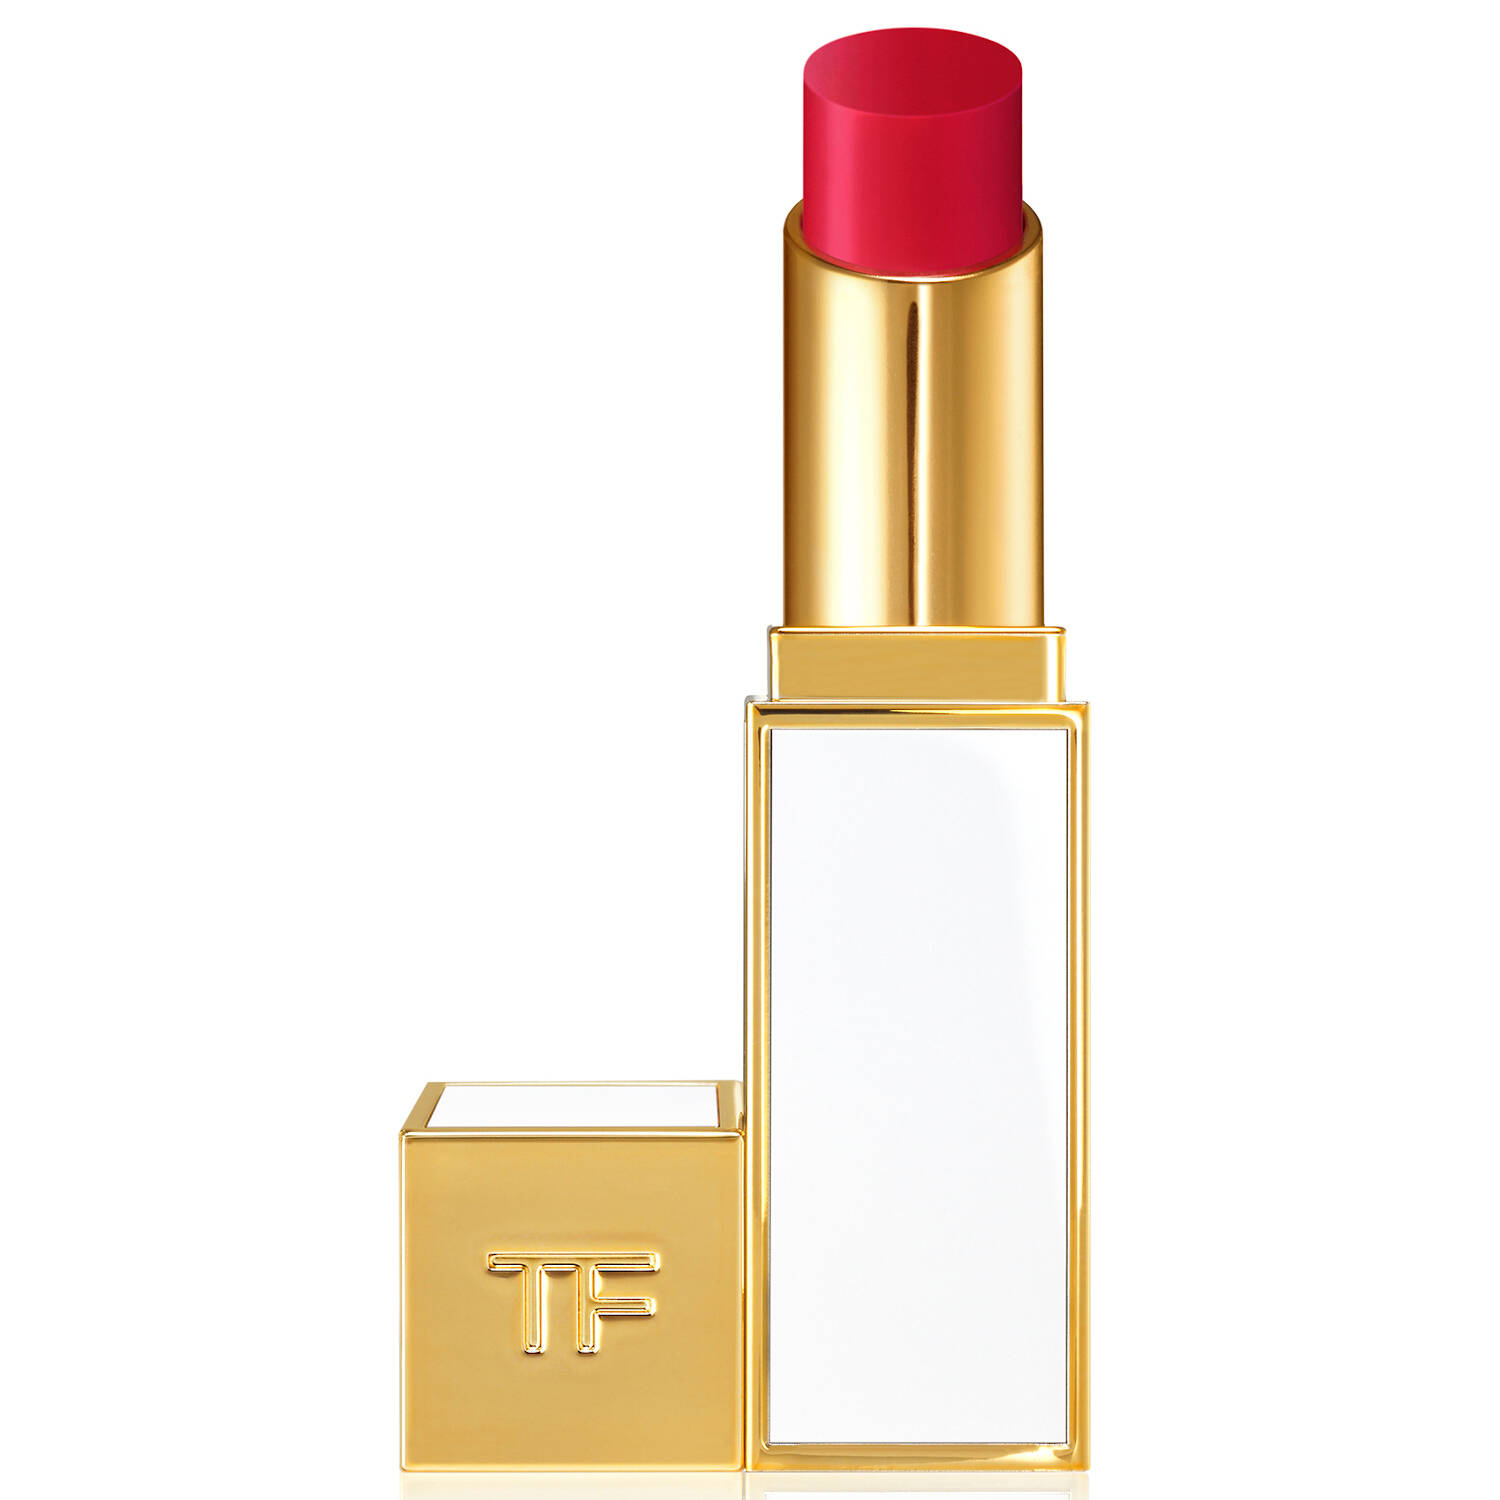 TOM FORD Ultra-Shine Lip Color (Firebust | 3,3 g) Make Up, Lippen, Lippenstift, Cosmetics, Lips von TOM FORD